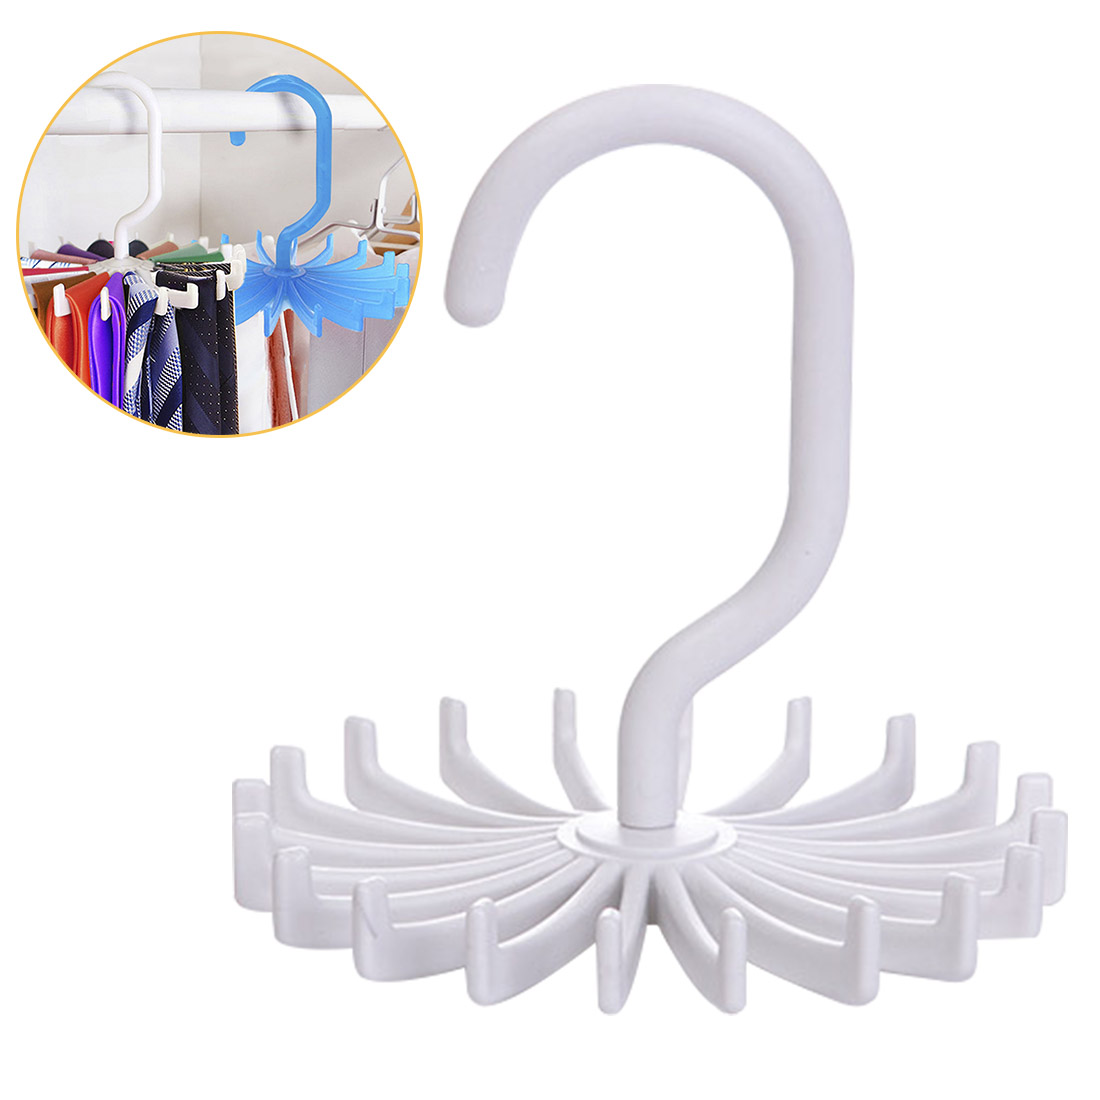 Poratable Tie Rack For Closet Rotating Ties Hook Holder For Clothing Organizer